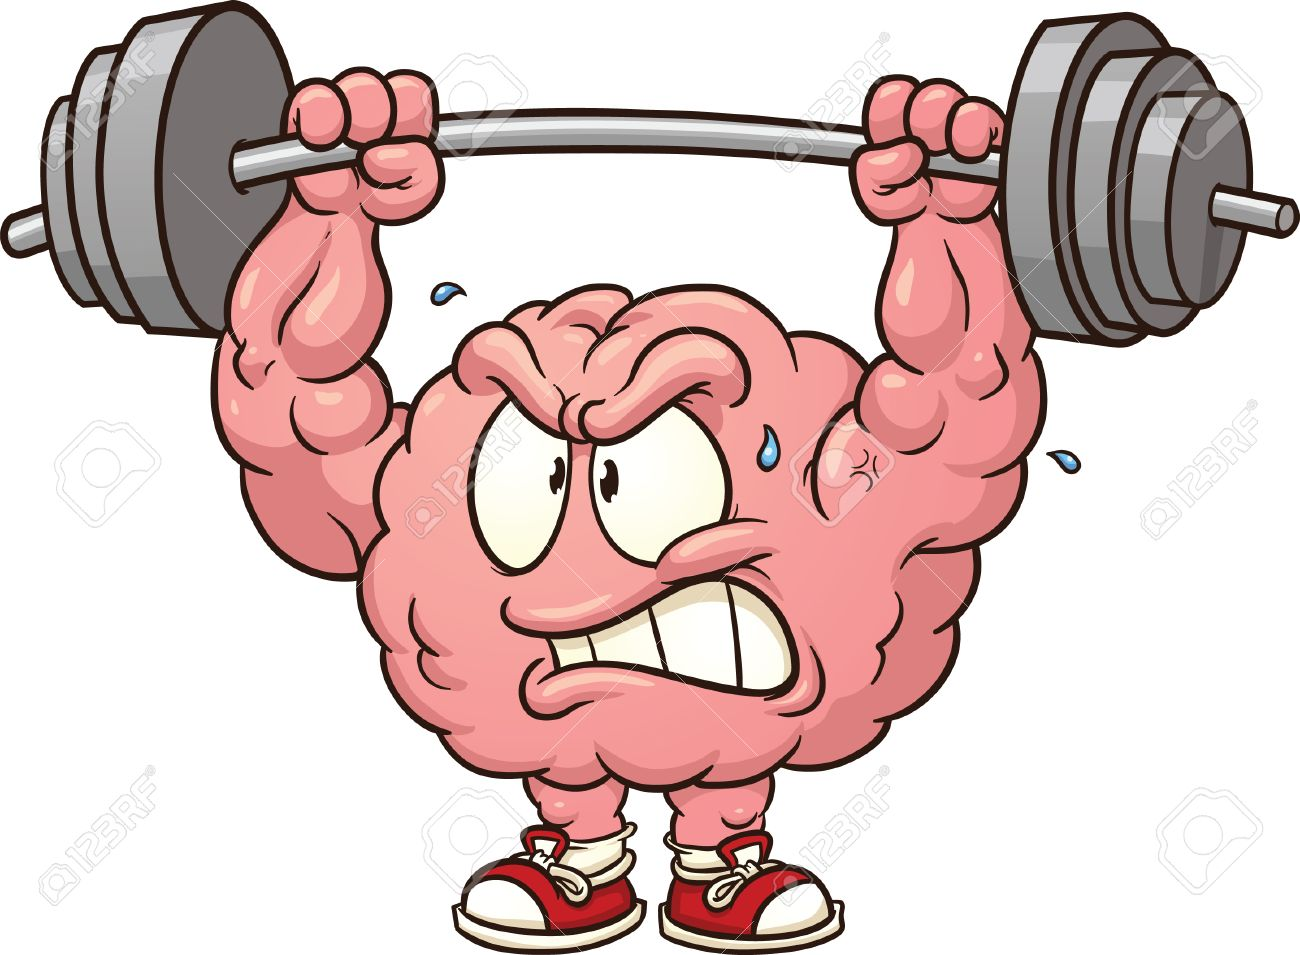 Strong mind clipart png free Free Clipart Brain | Free download best Free Clipart Brain ... png free